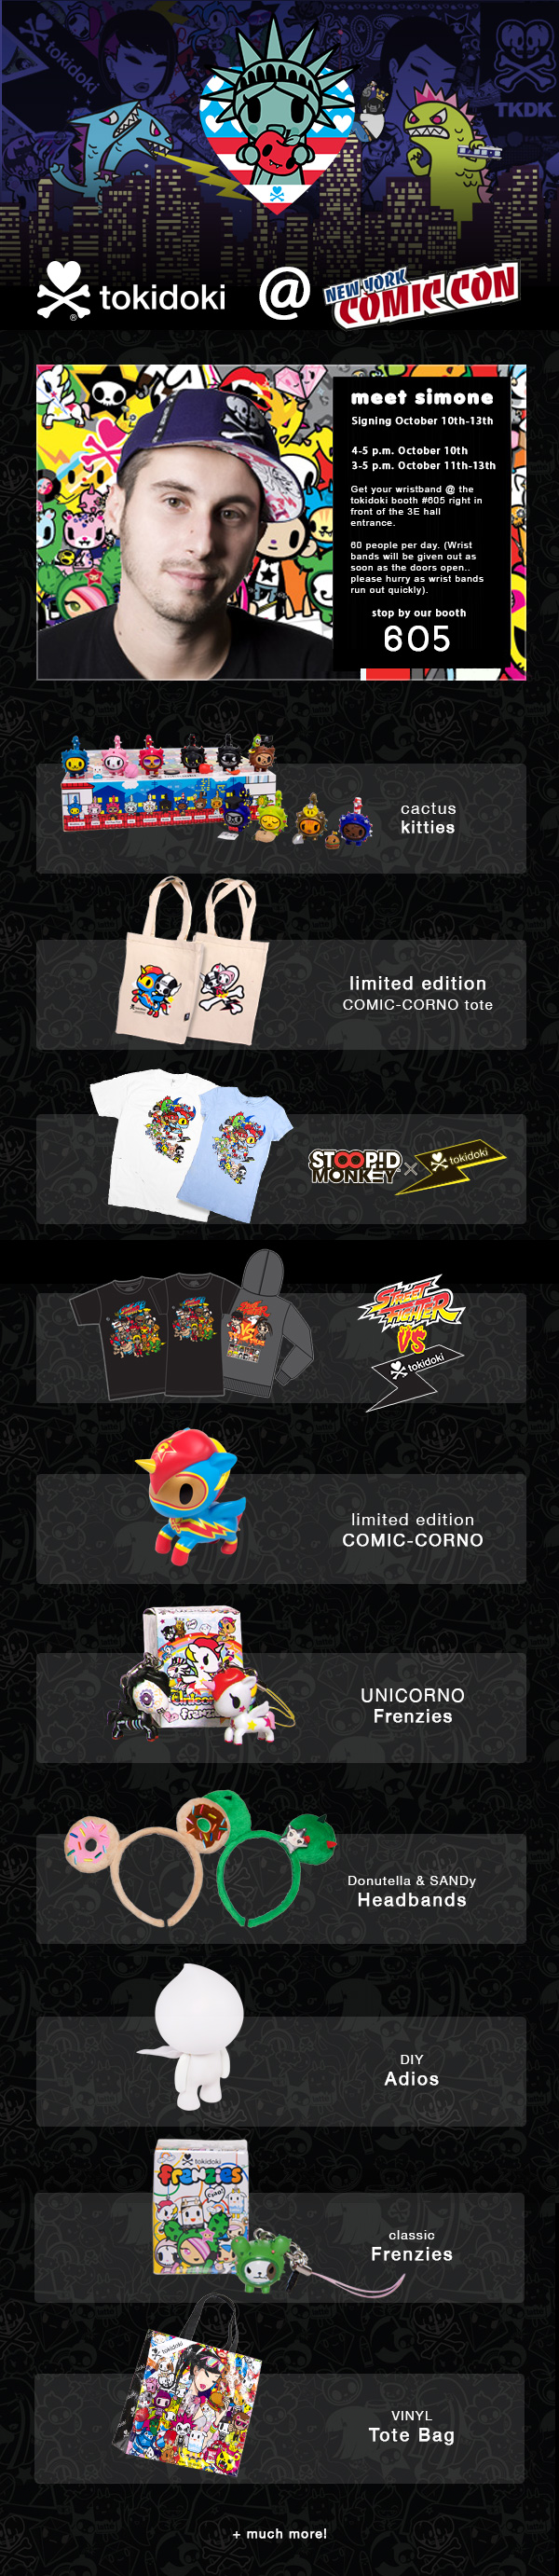 Check out all of our exclusives for NYCC 2013